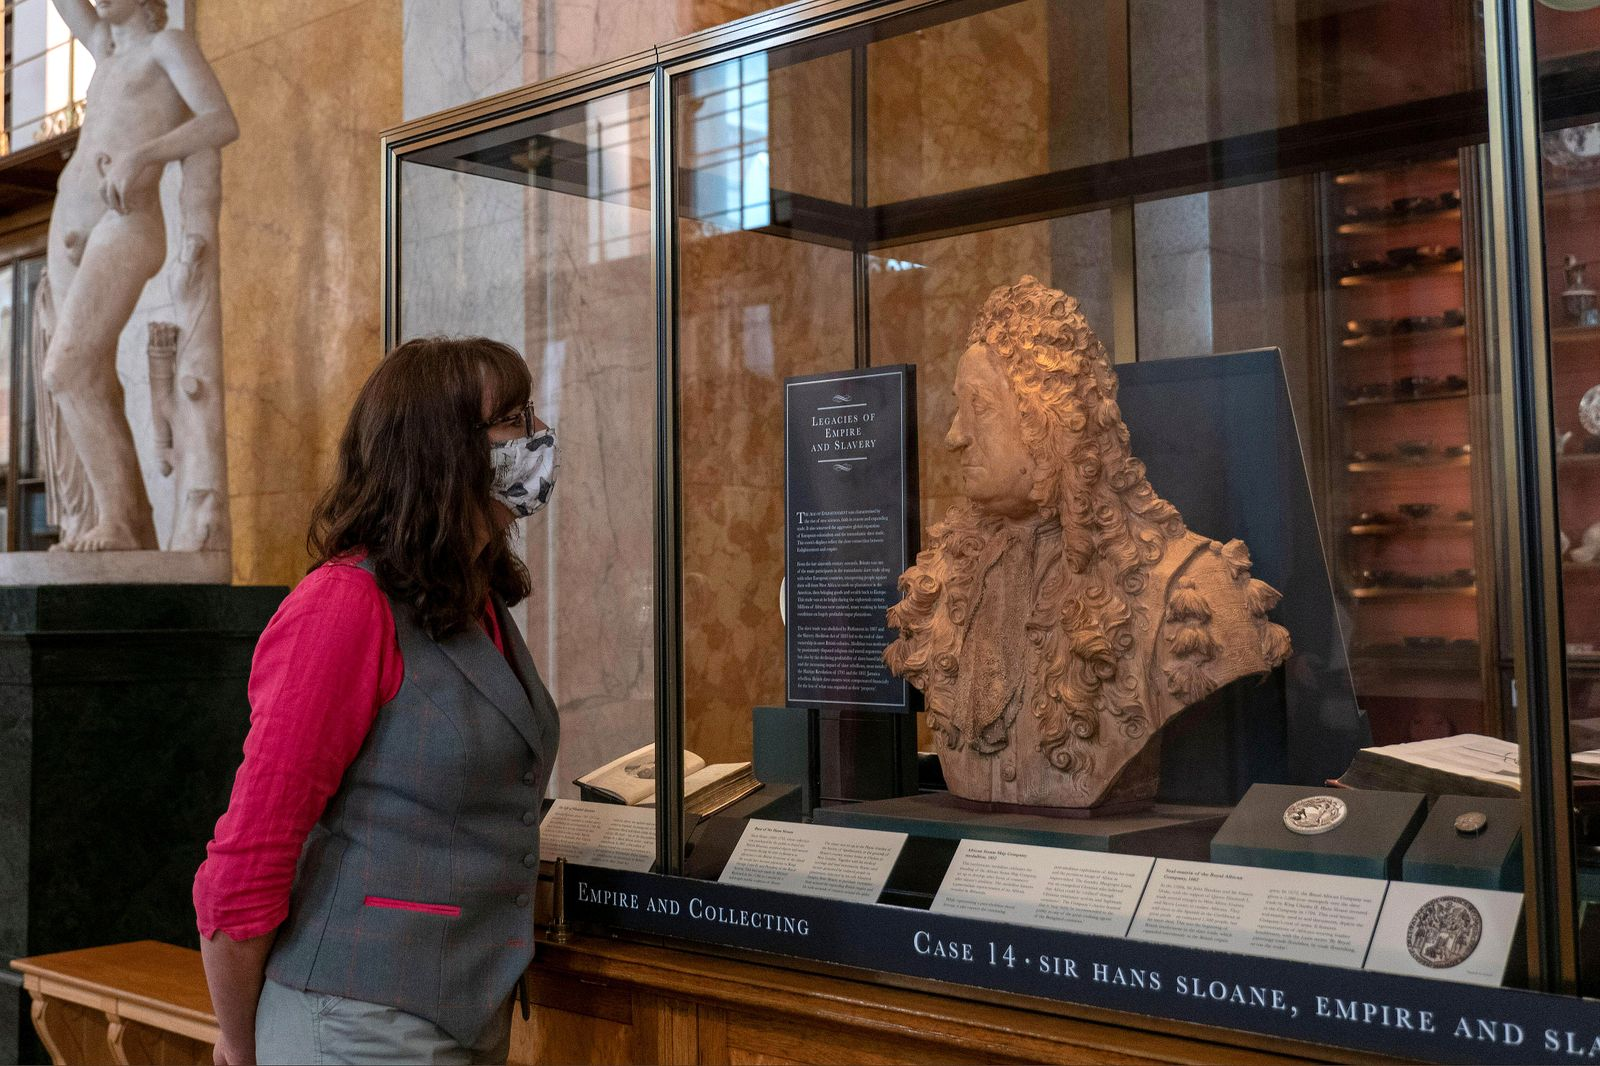 London, England. 25th August 2020. The Bust of Sir Hans Sloane, founding father of the British Museum, has been removed from it's pedestal and is now labelled a slave owner. The British Museum will reopen it's doors to the public in line with government